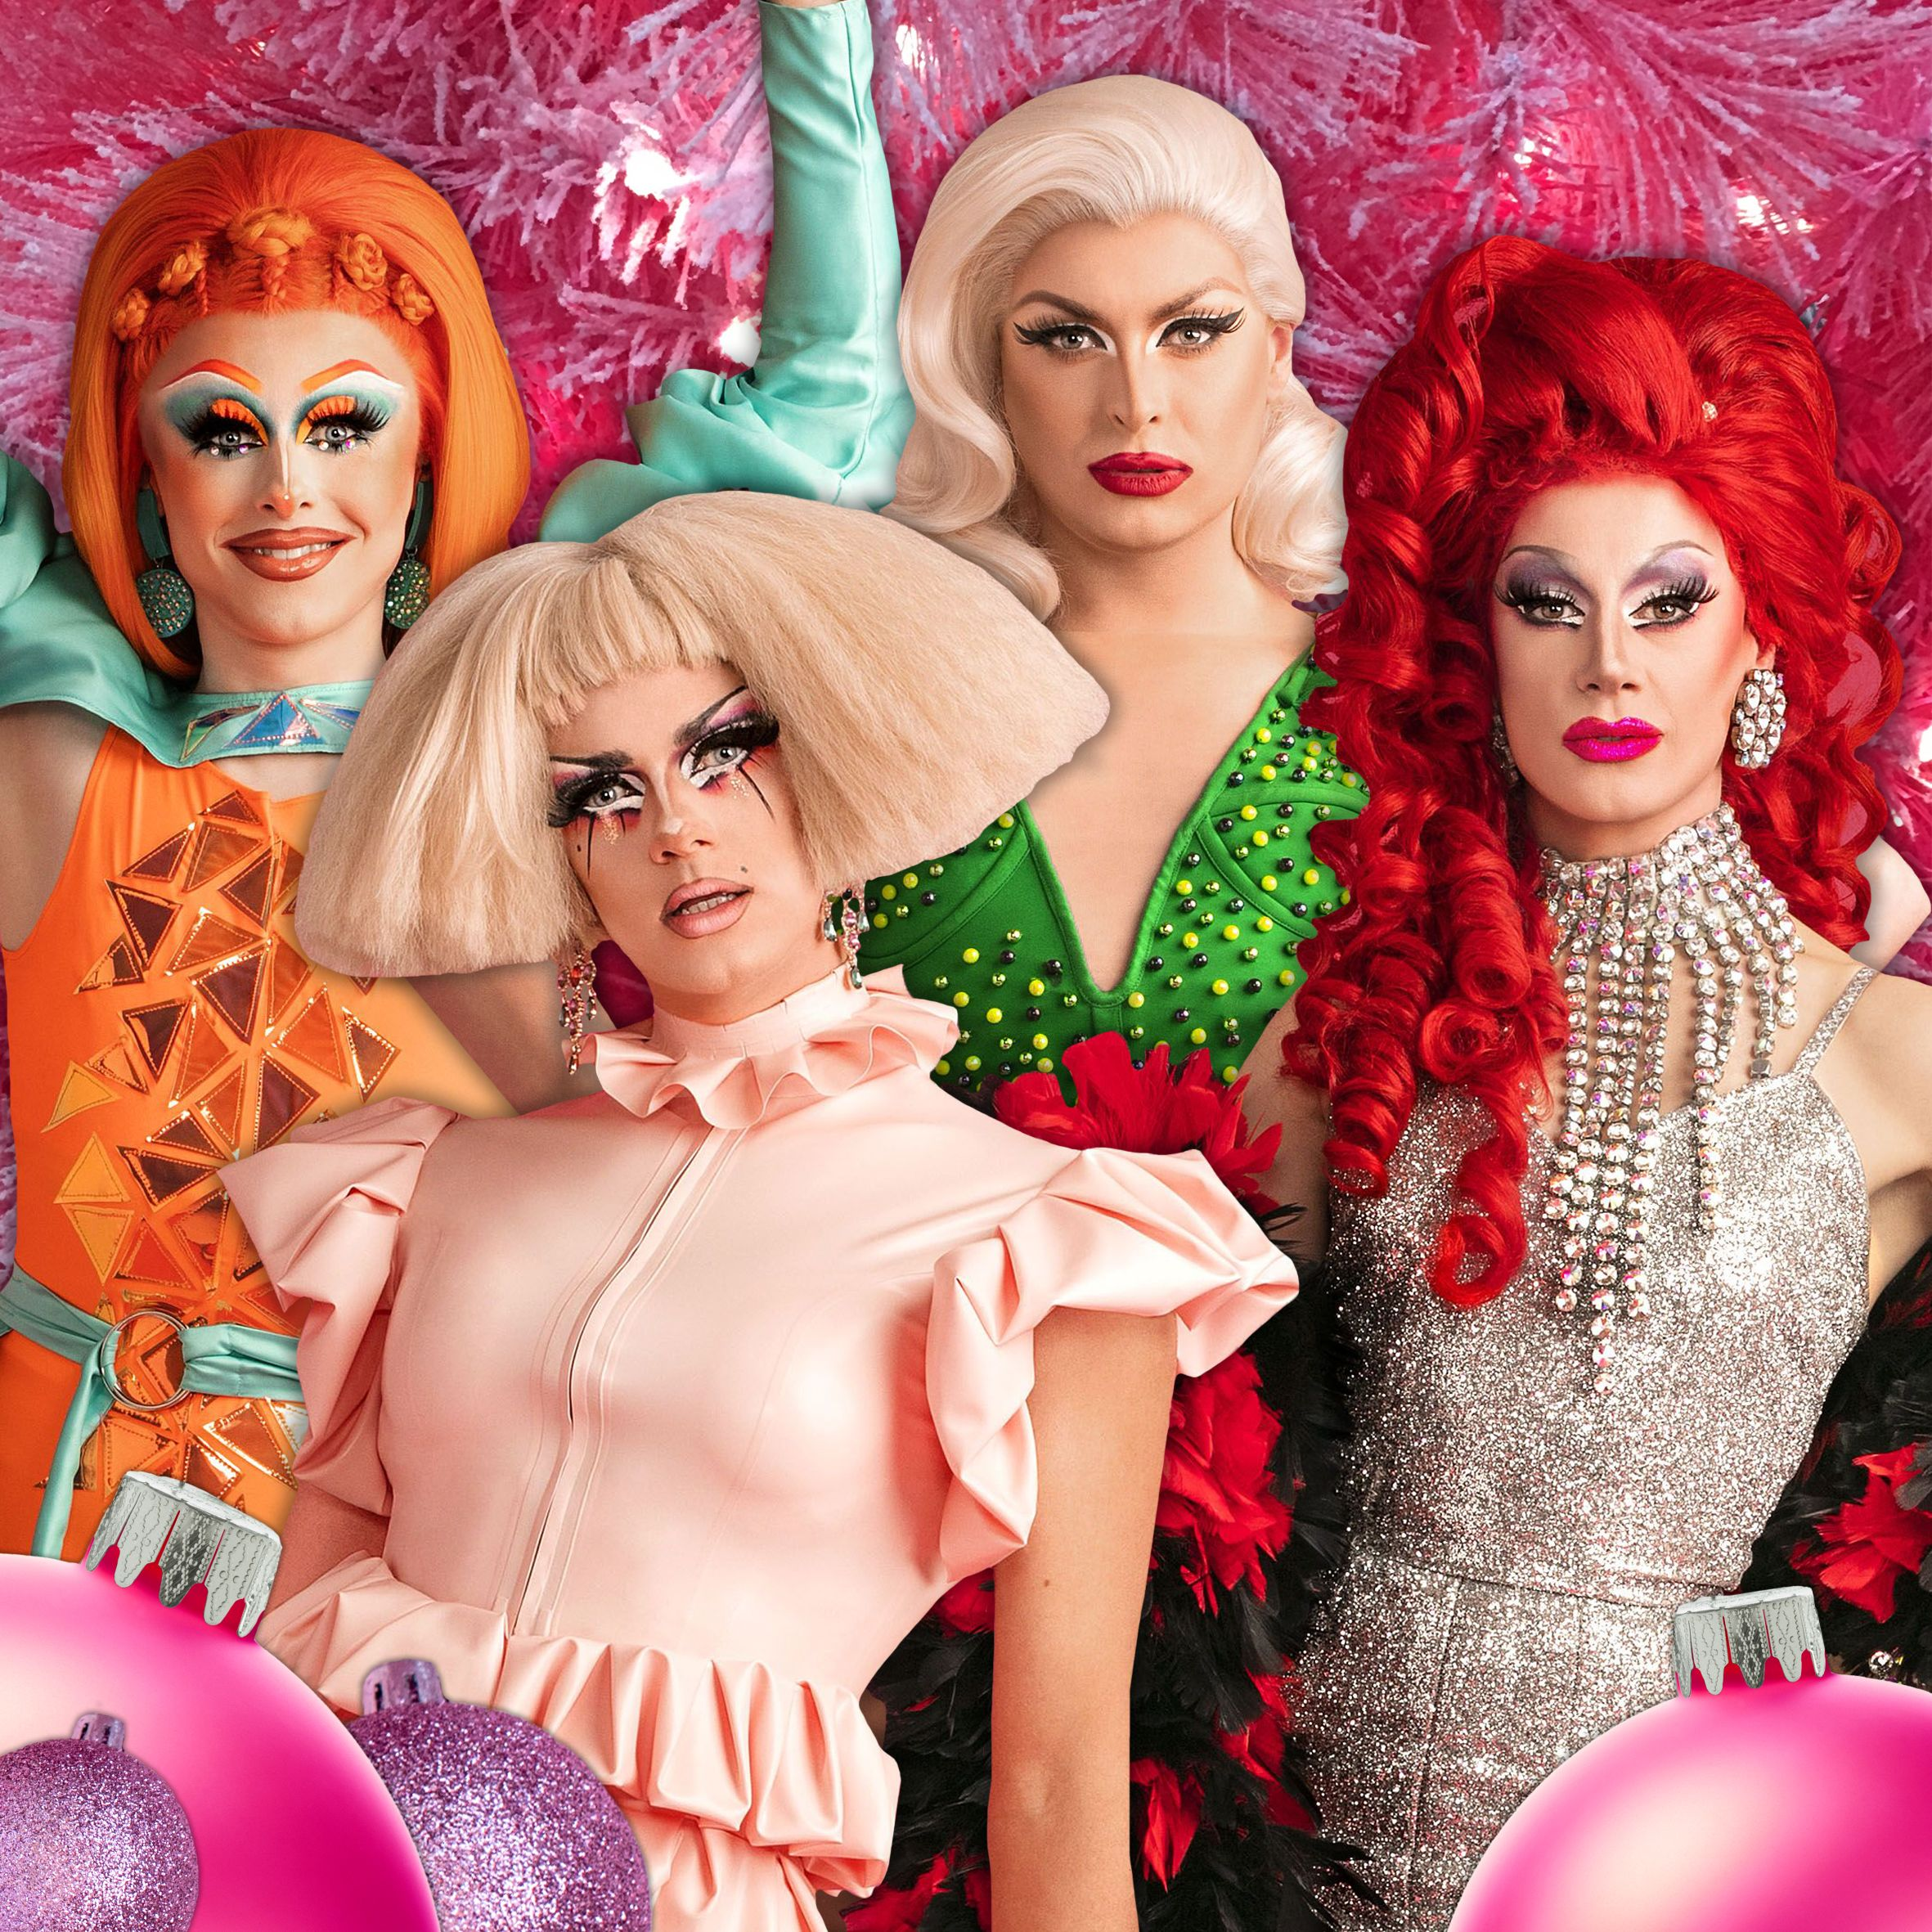 A Drag Queen Christmas 2021 Cast Rupaul S Drag Race Uk Queens Reveal Their Worst Christmas Gifts